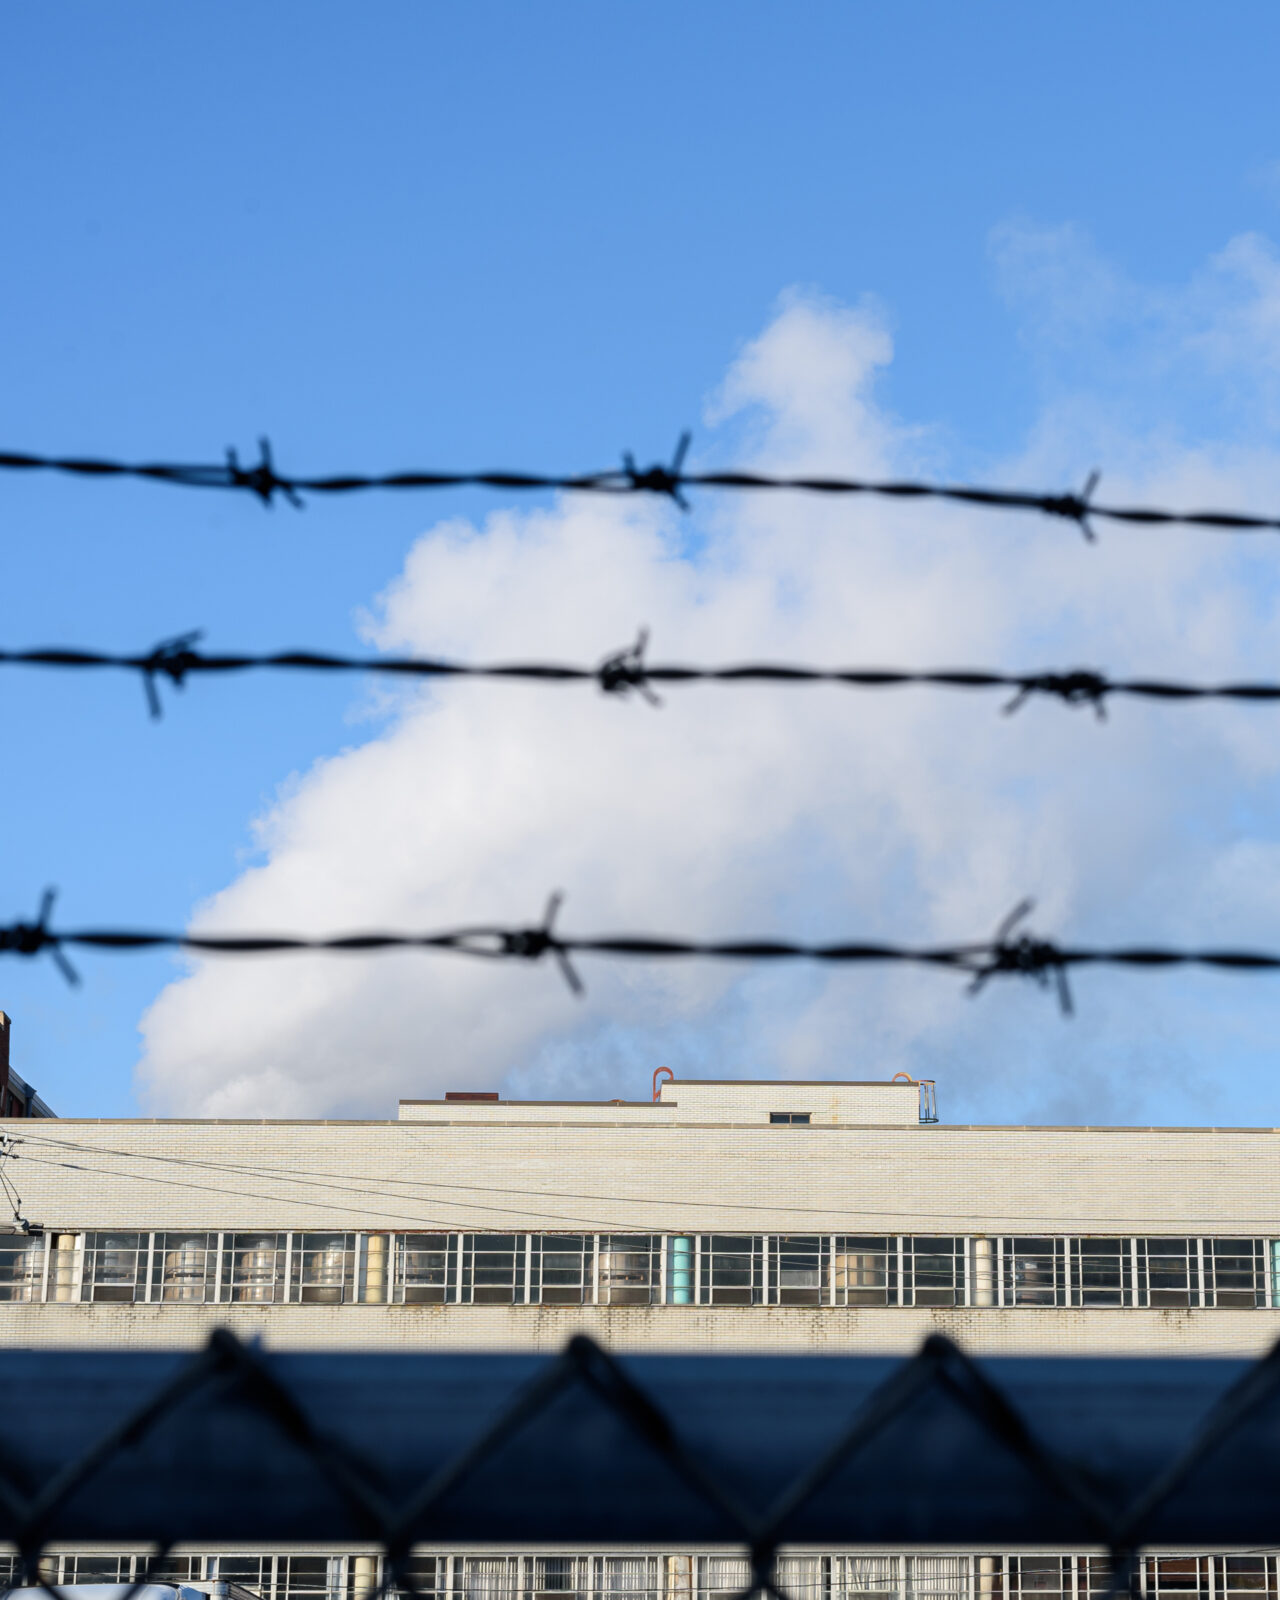 blue sky with fluffy cloud over a building roof behind chain link fence